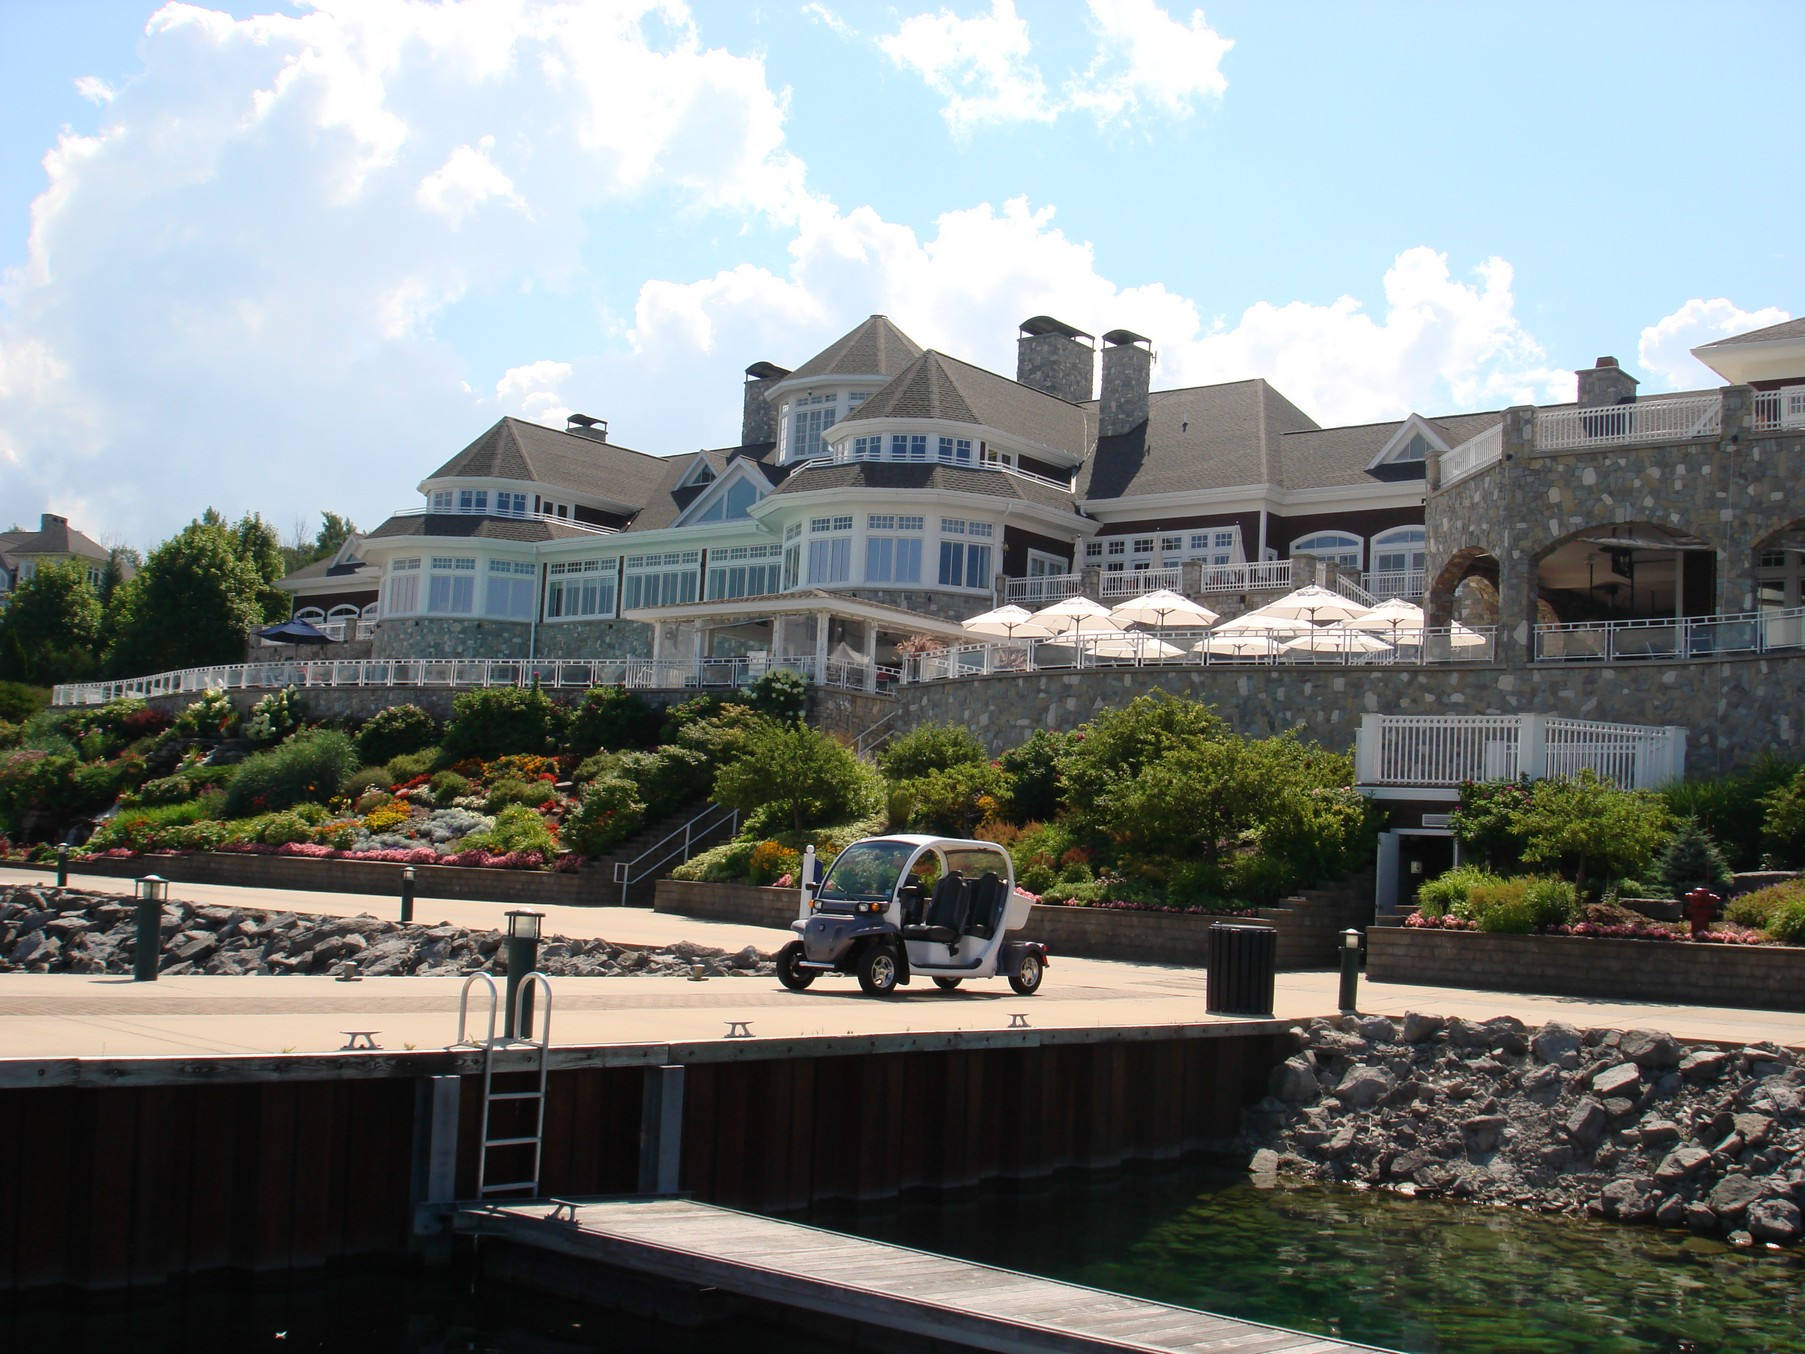 Land for Sale at Yacht Dock 3 4300 Vista Drive Unit 3 Bay Harbor, Michigan, 49770 United States